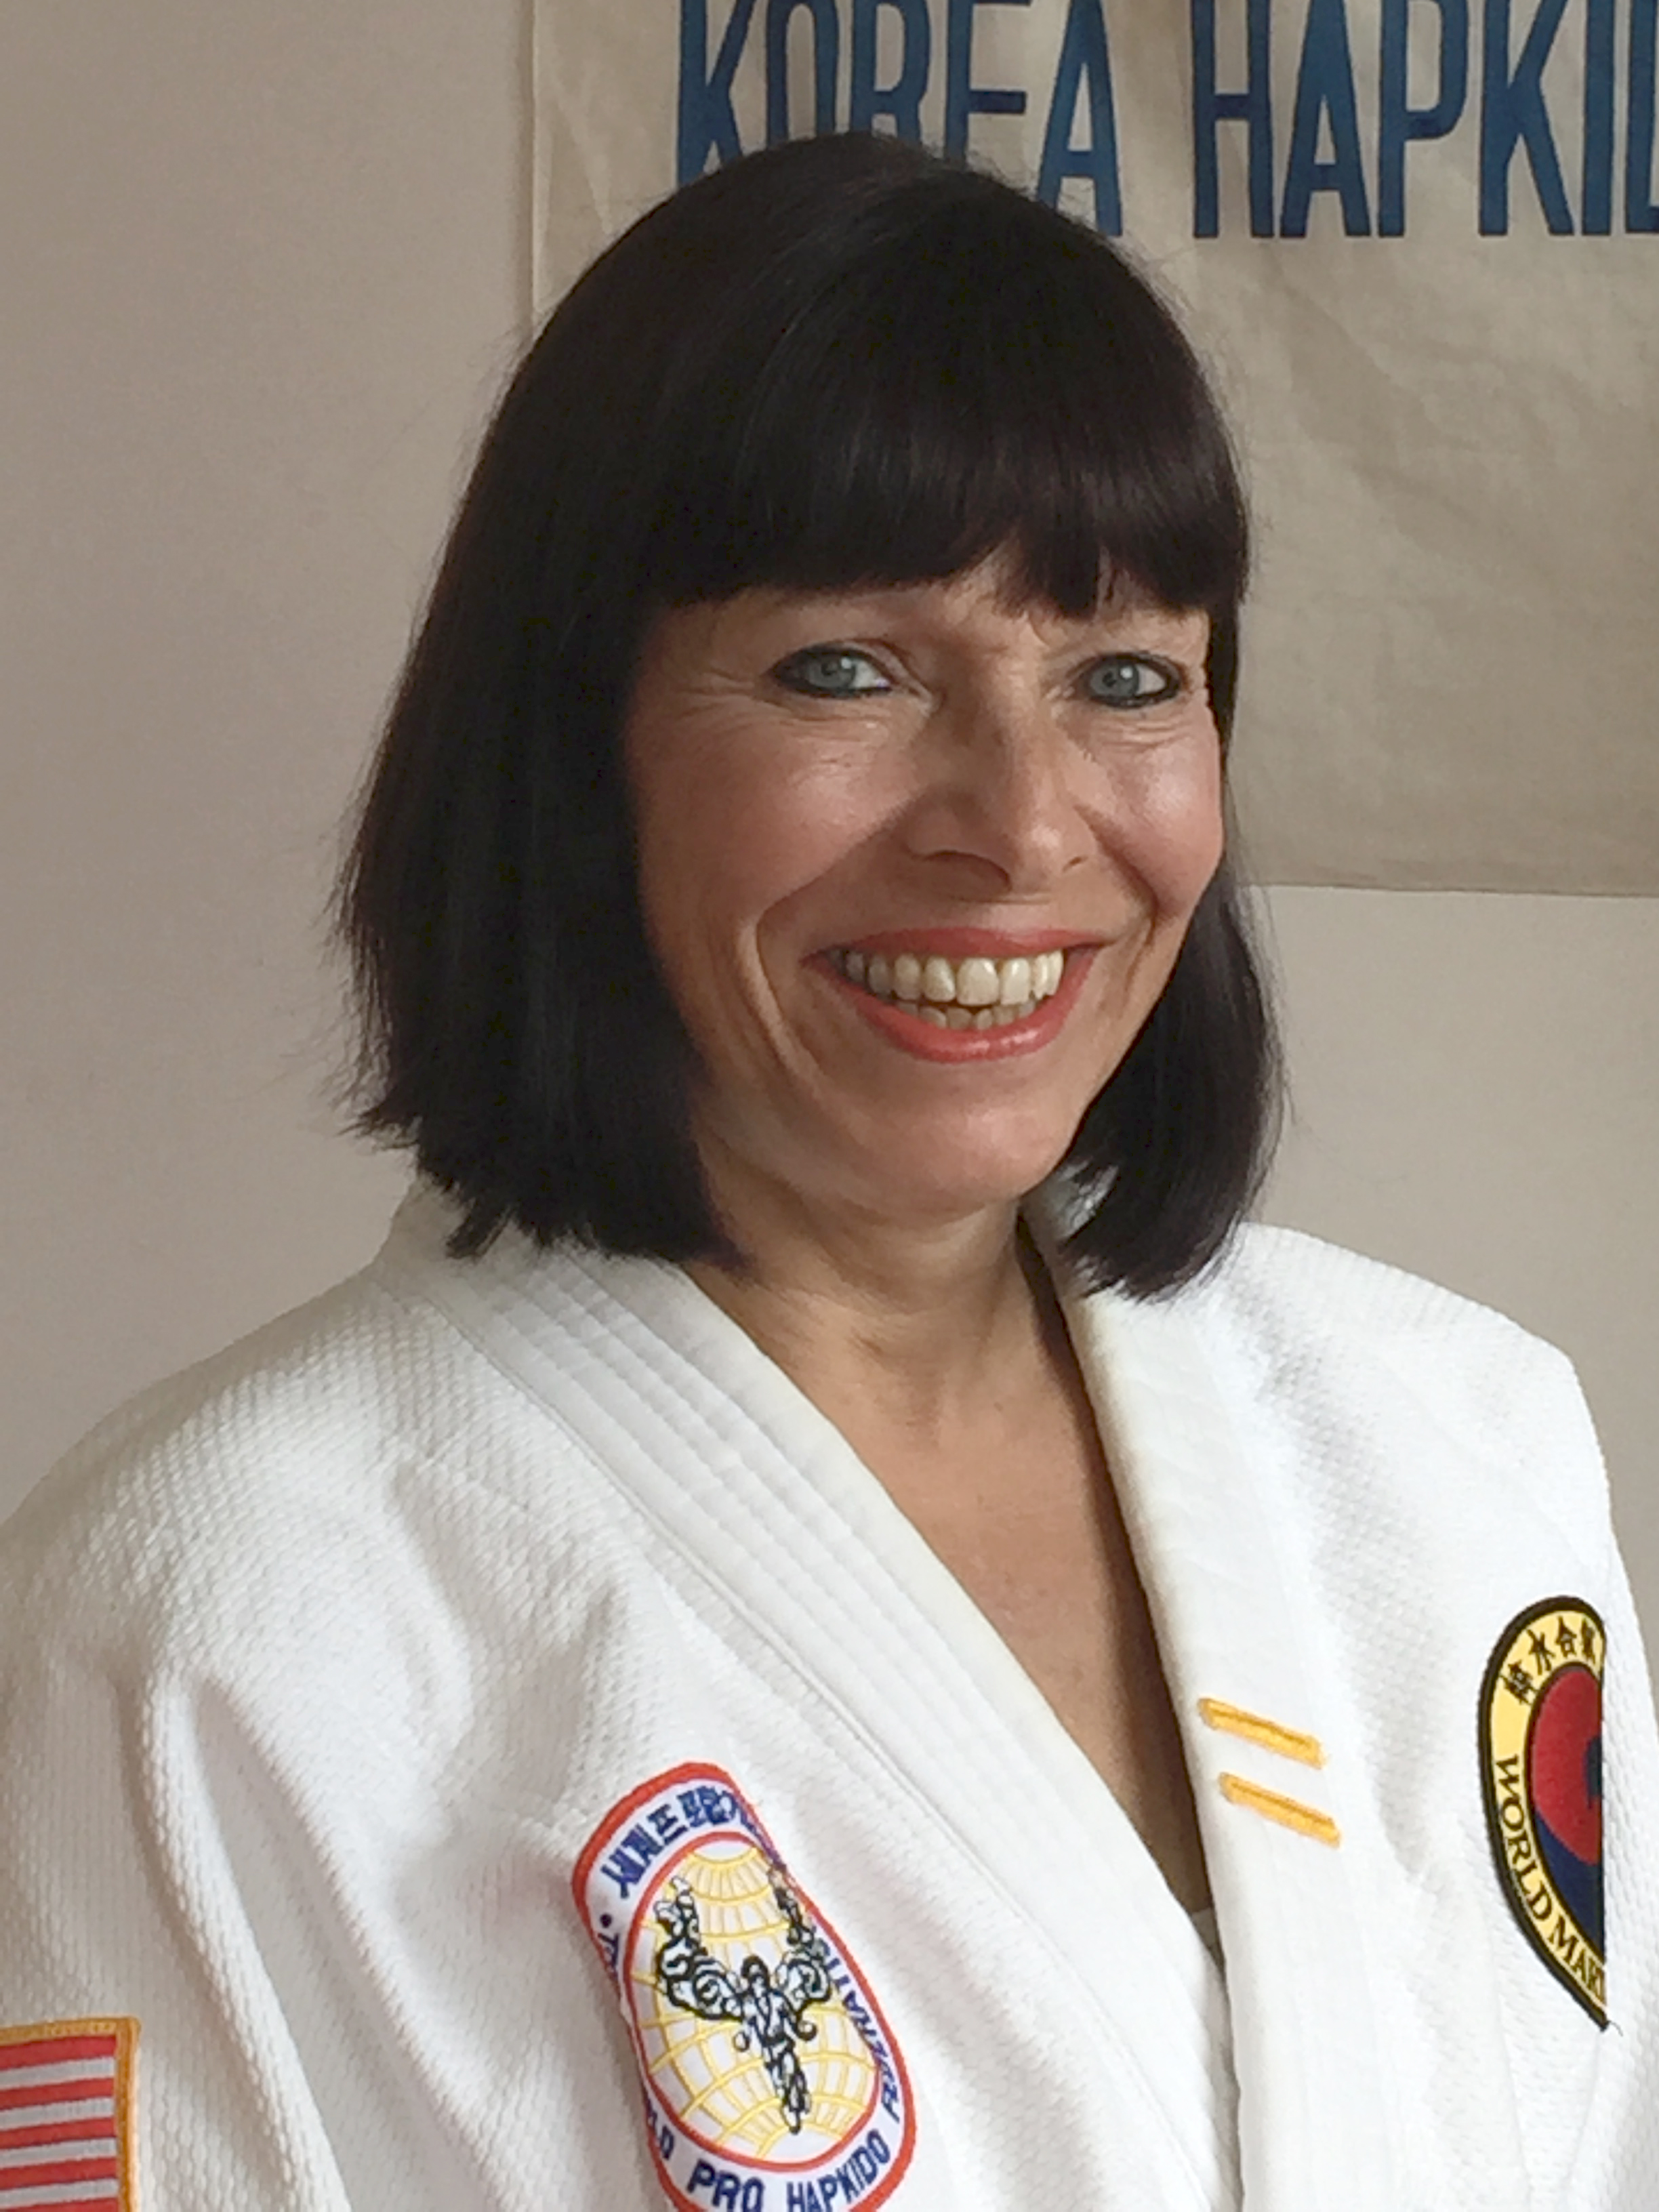 Certified Instructor Janet Rutkowski  has been training in different martial arts styles for 20 years. She started training in Hapkido at WMAC over a decade ago, and is currently preparing for her 2nd dan black belt. Janet is passionate about teaching children, which she has been doing at WMAC for 7 years. She is loved and cherished by many of our WMAC kids. Janet is an accomplished metal sculptor, and has her work shown in many NYC and upstate galleries.